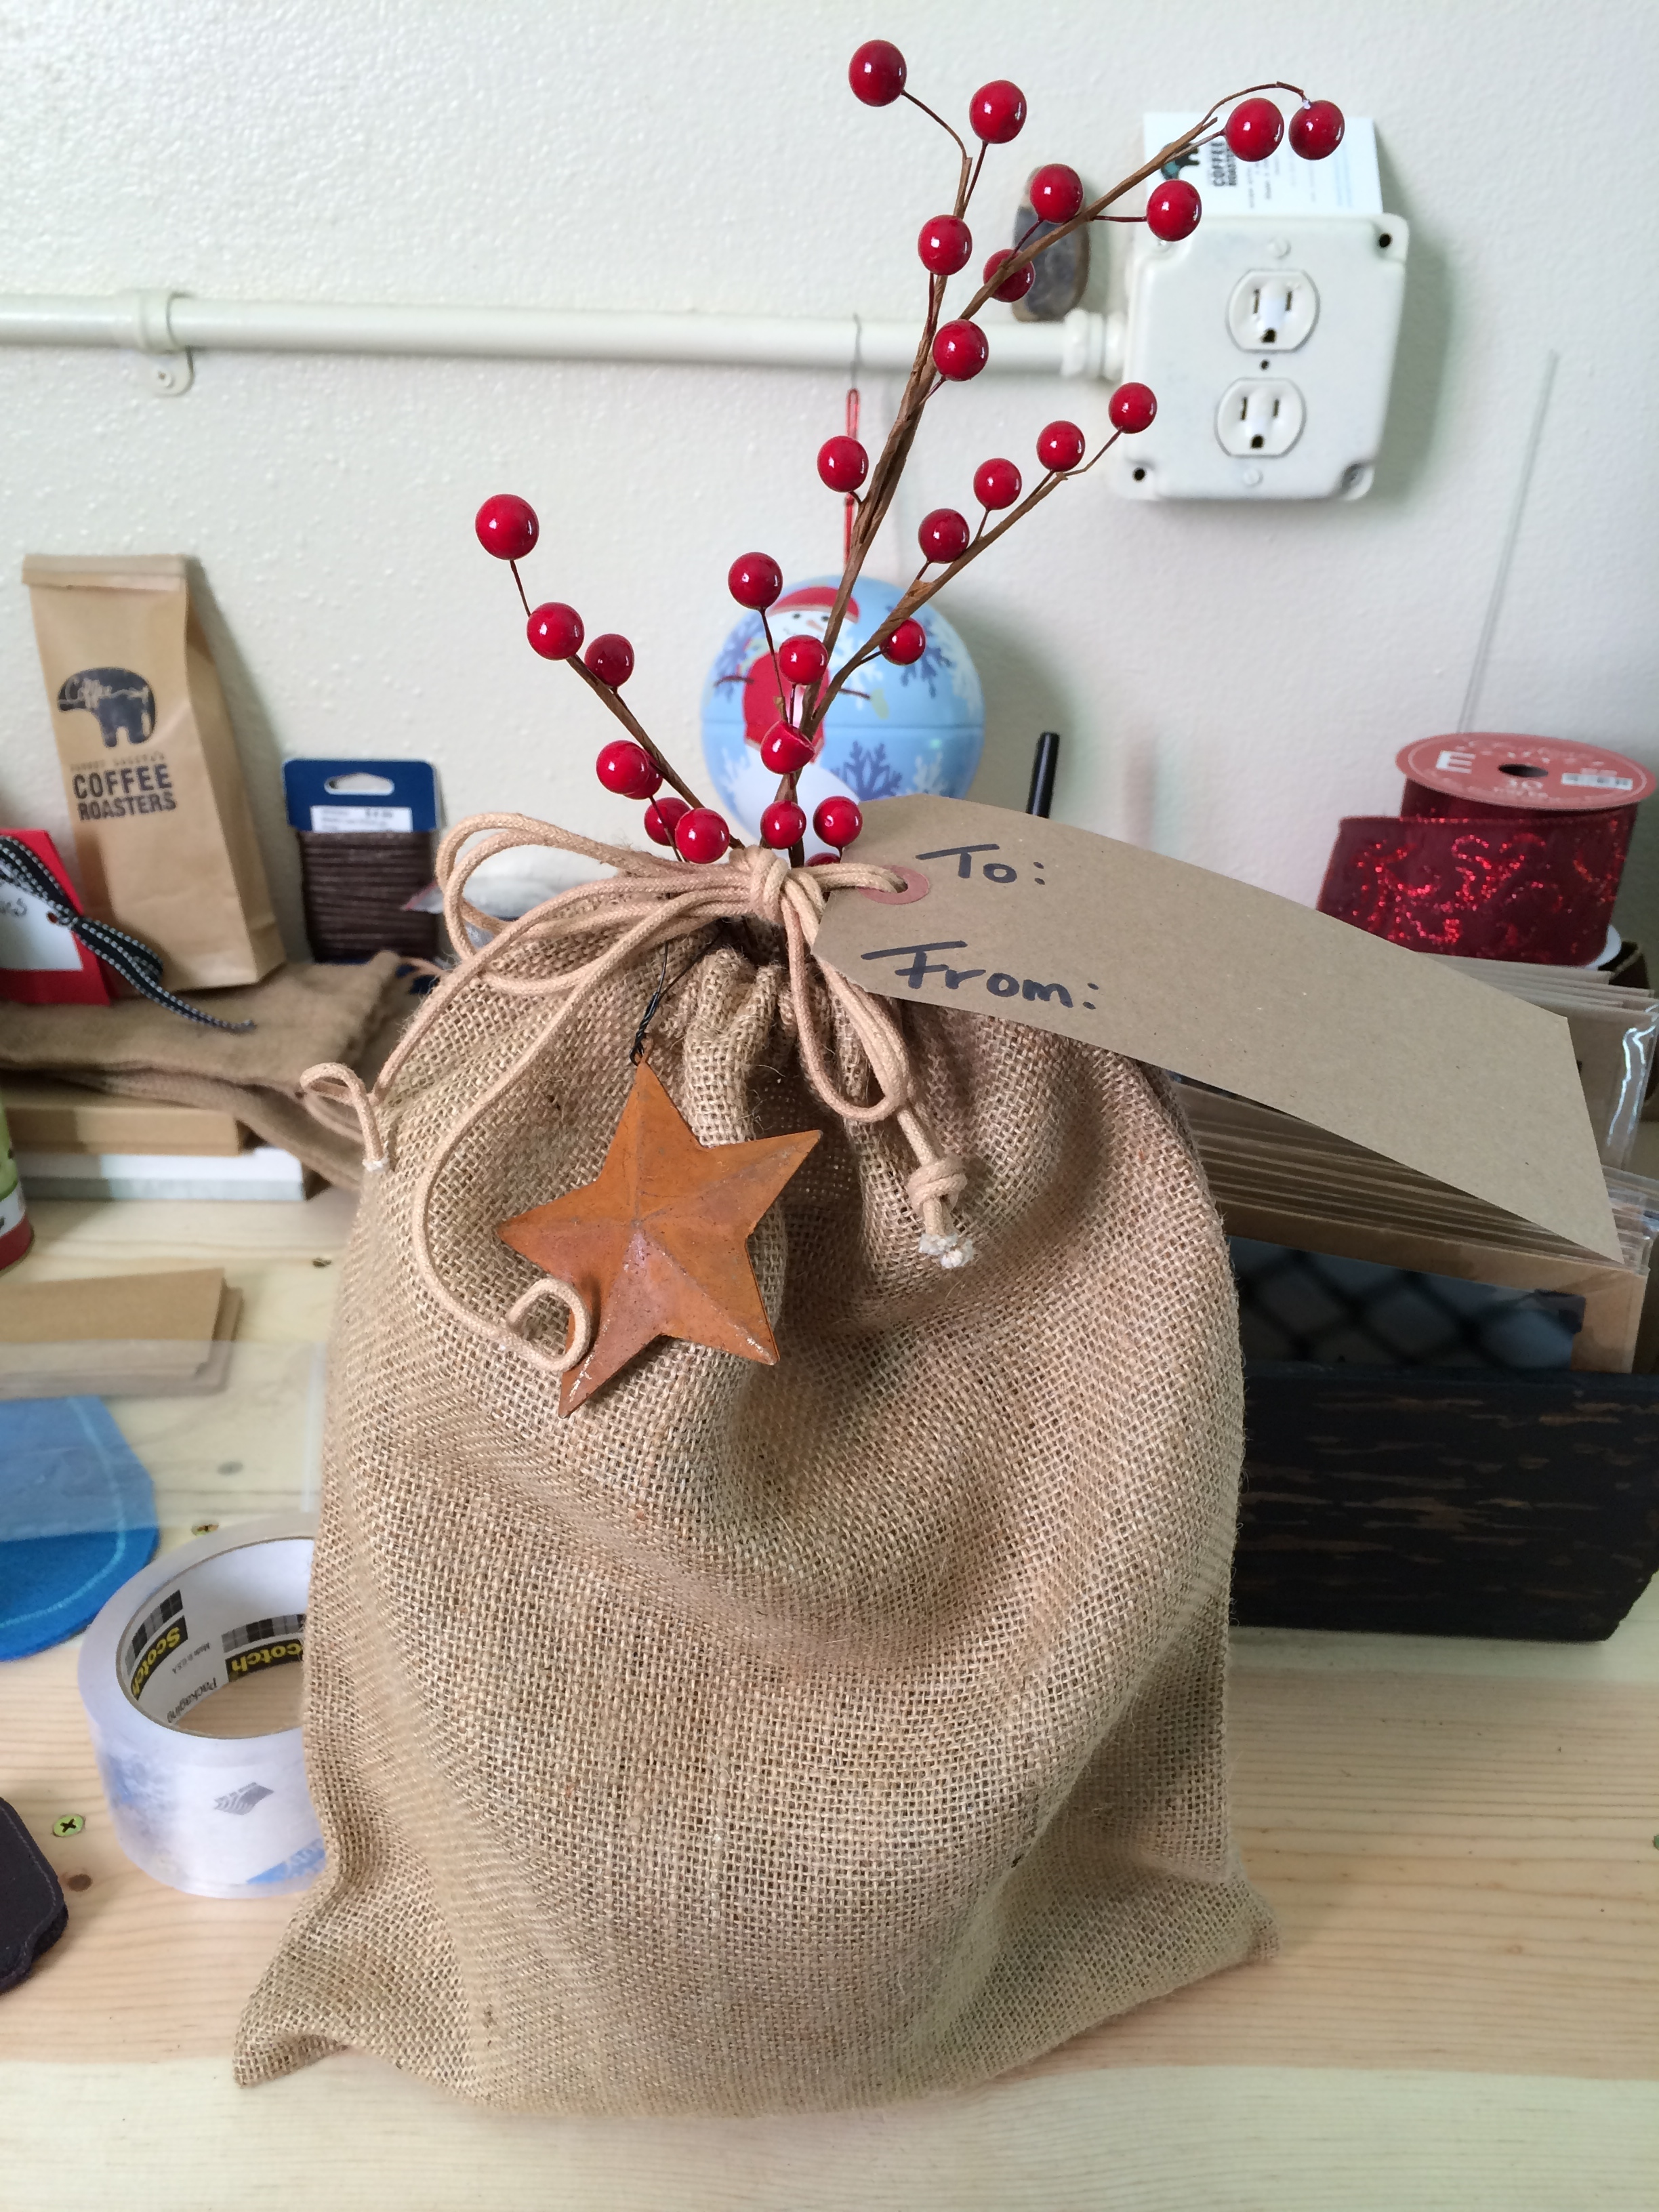 Holiday touch for coffee in burlap sack for customers